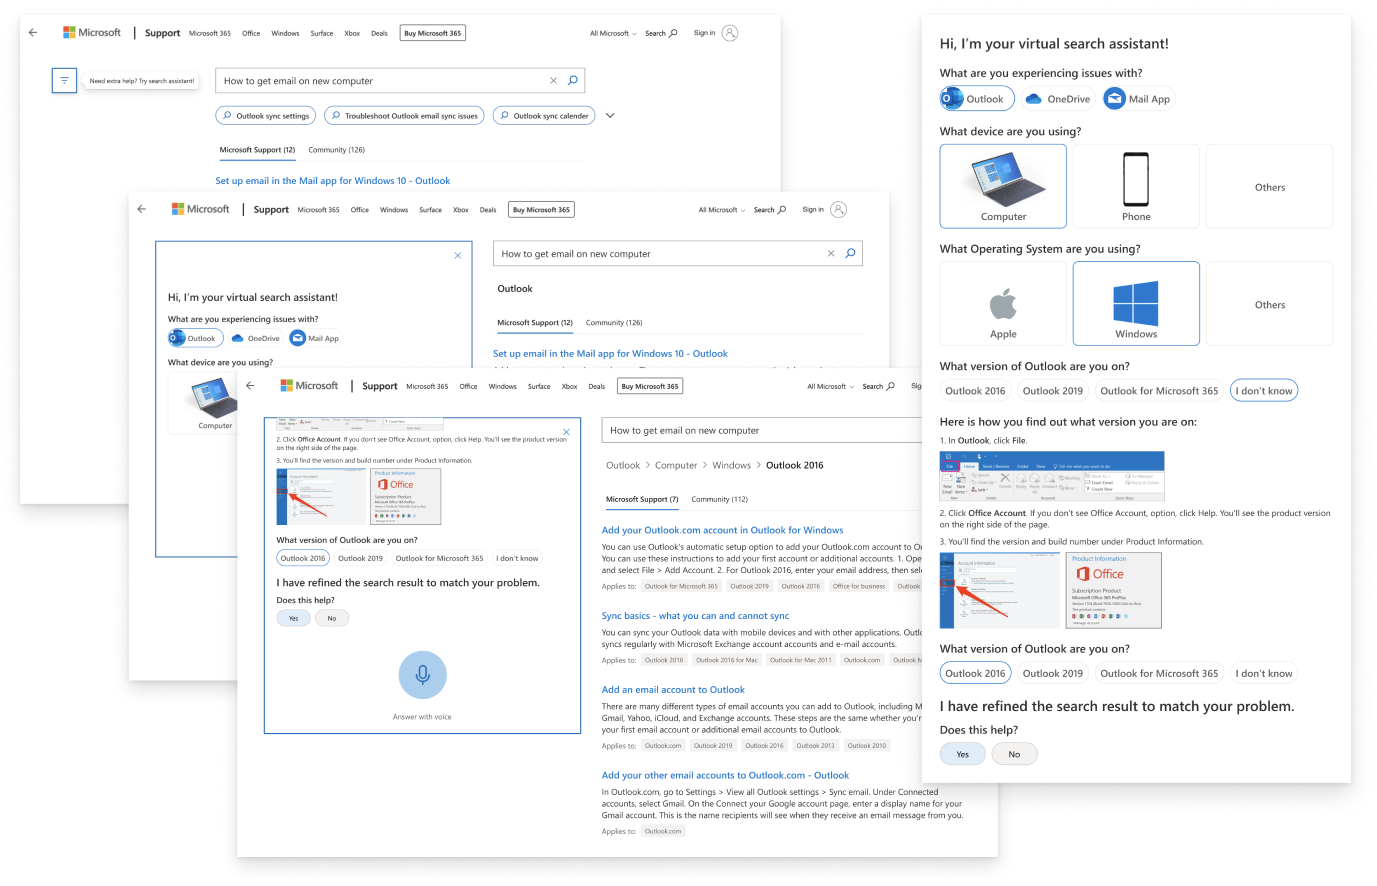 A compilation of the initial design of the search results page with the search assistant.